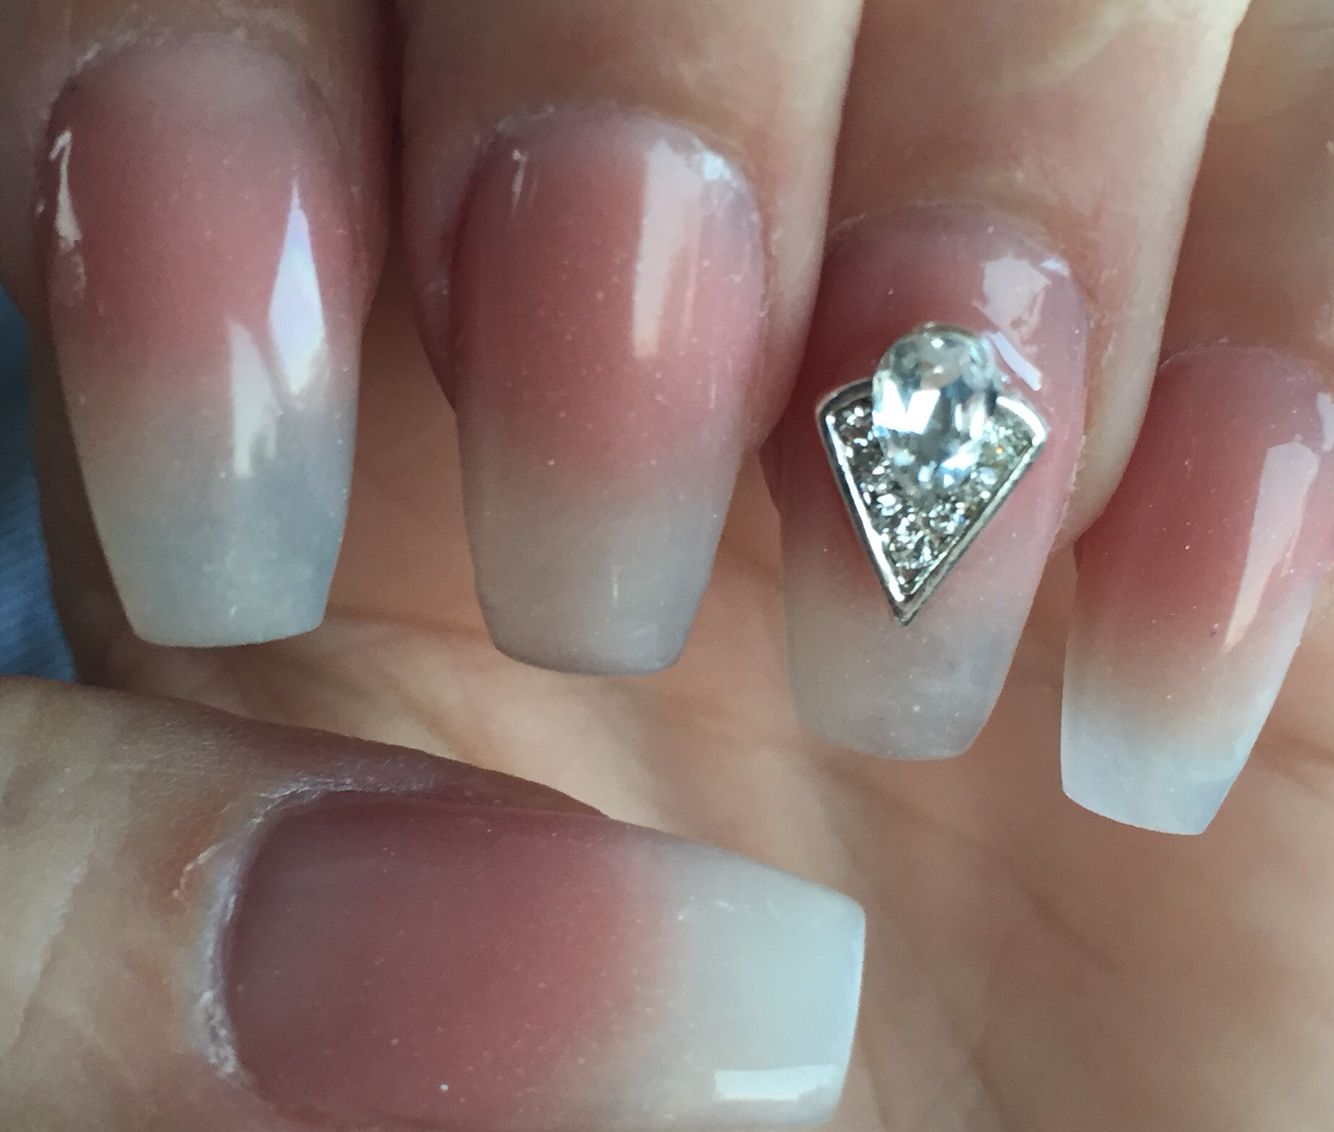 Impress press on manicure nails my style pinterest - Find This Pin And More On My Style By Heavenlyhavens